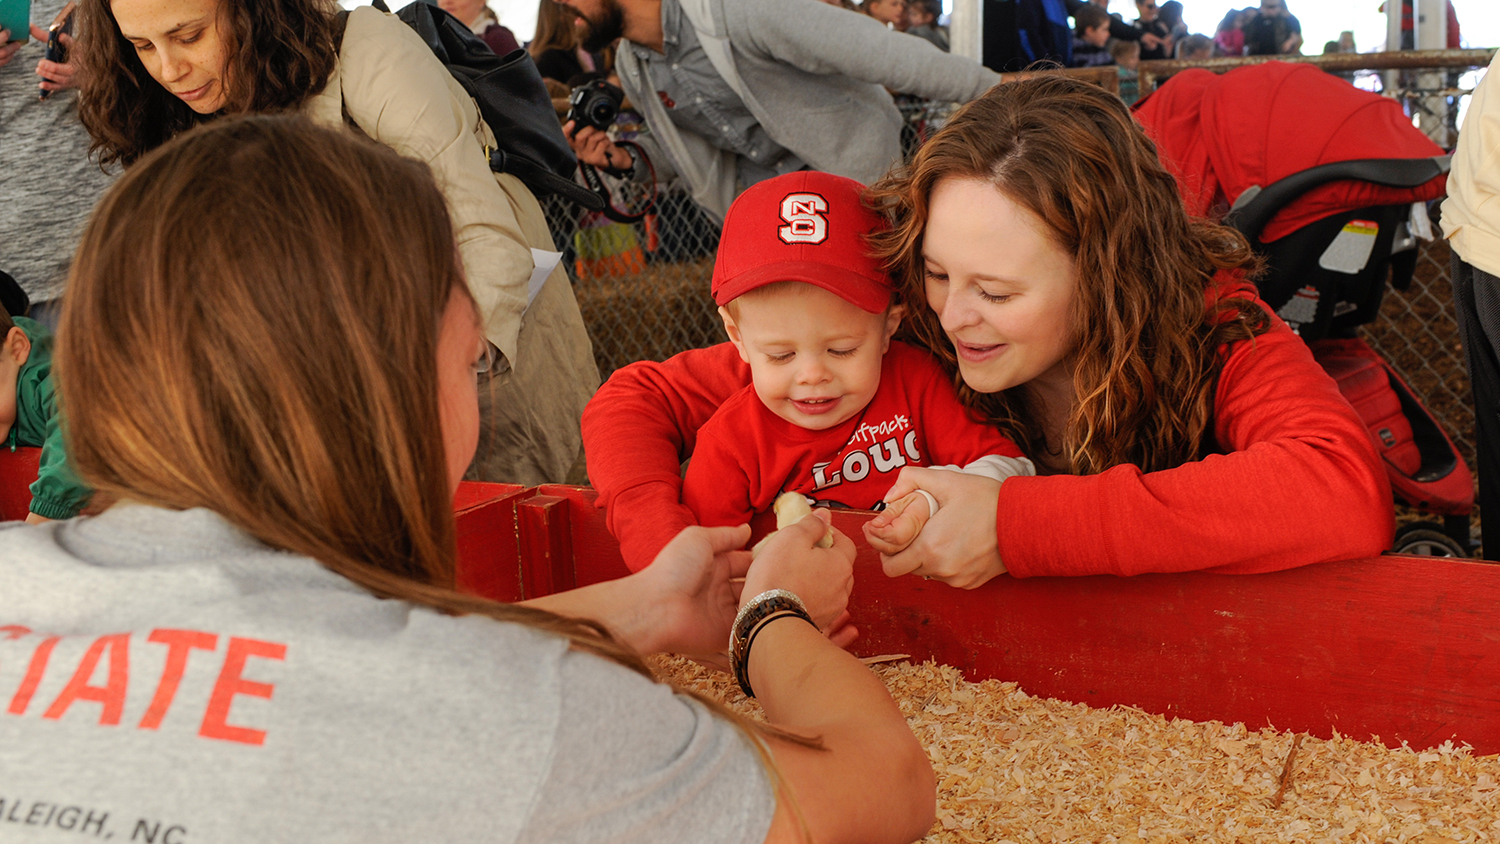 NC State student shows young boy a chick.